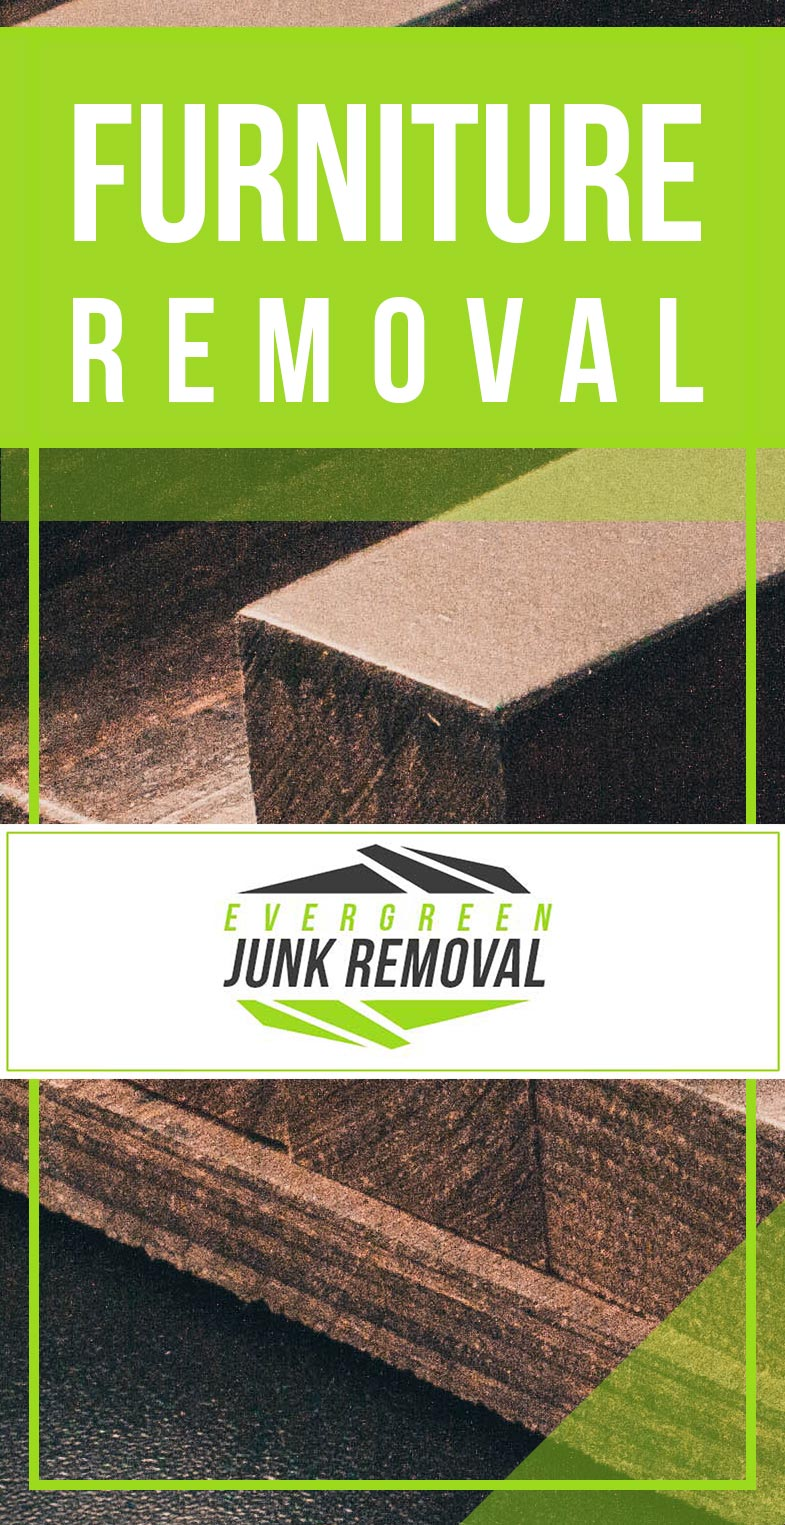 Rockwood Furniture Removal